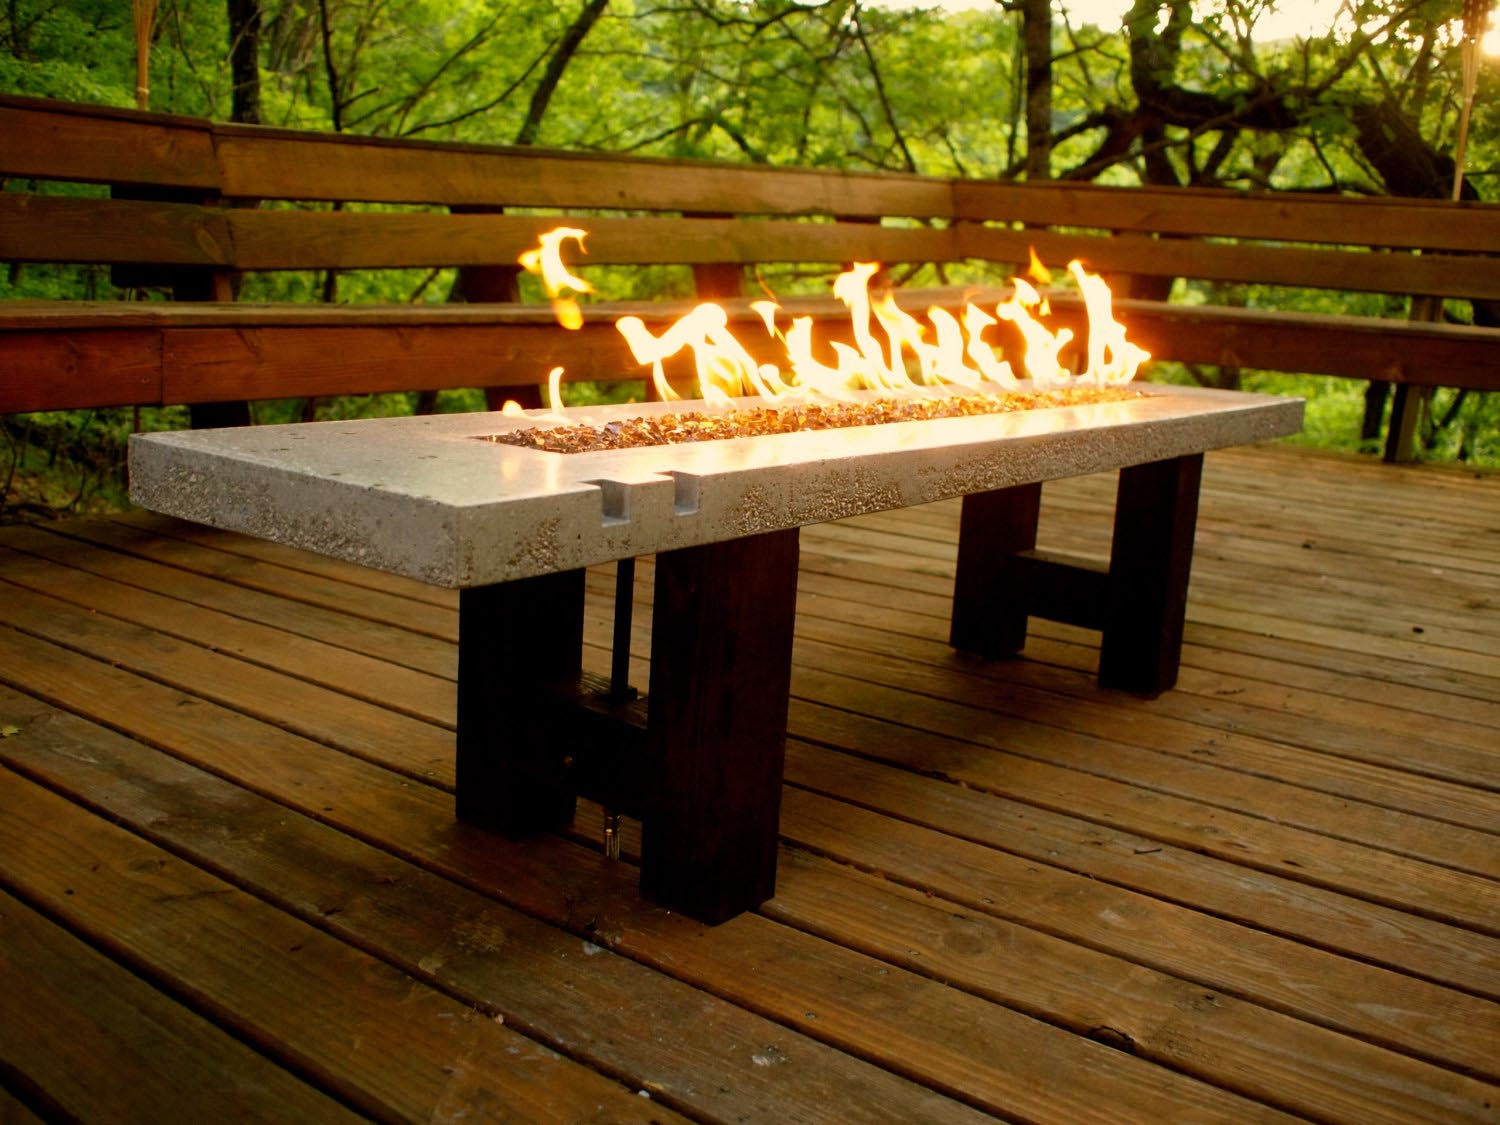 Fire Pit Chairs And Other Equipment For Barbecue